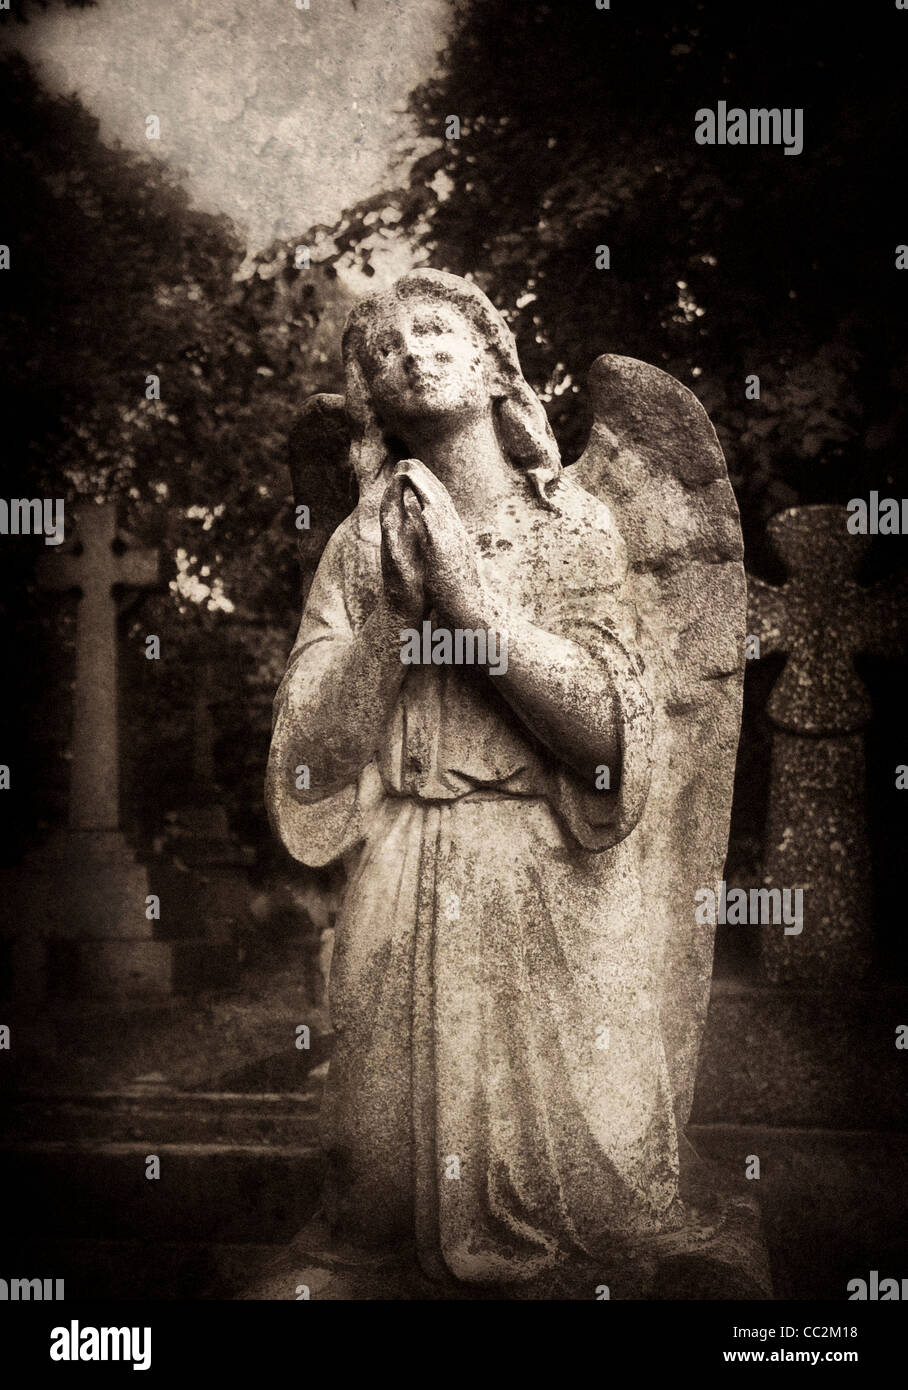 Statue of an female angel praying in Brompton Cemetery, London Stock Photo